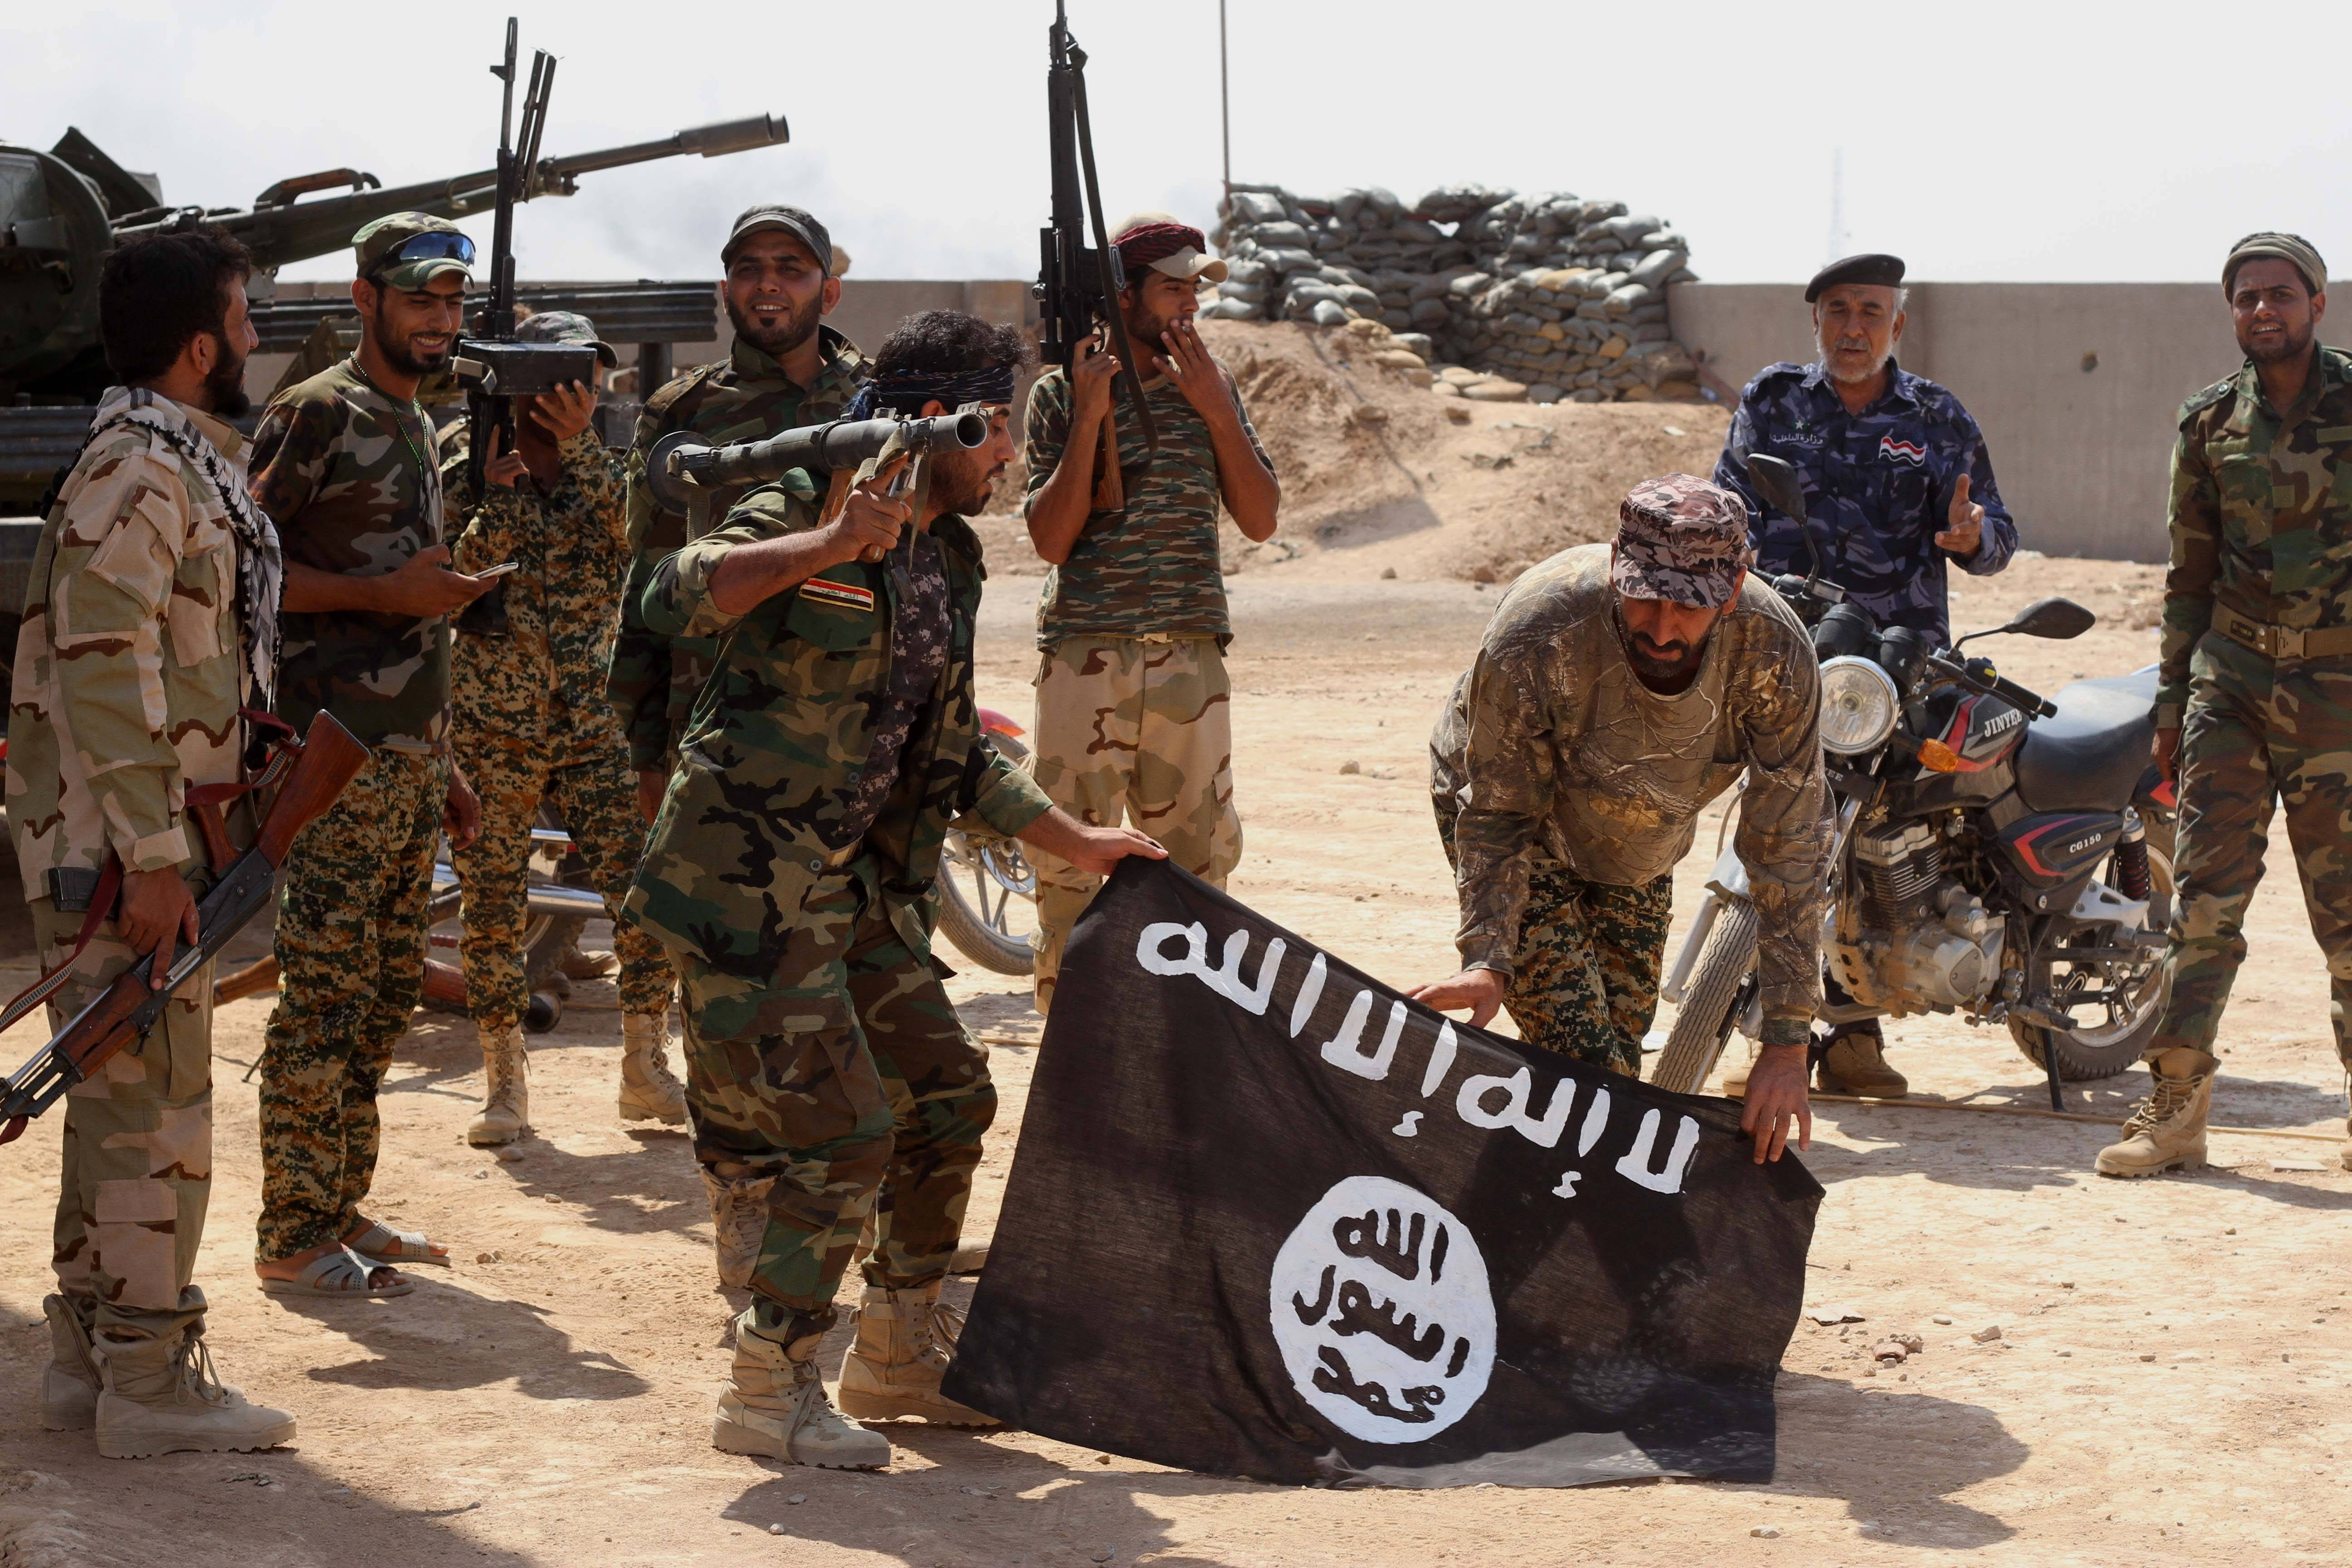 Group accuses extremists of war crimes in Iraq